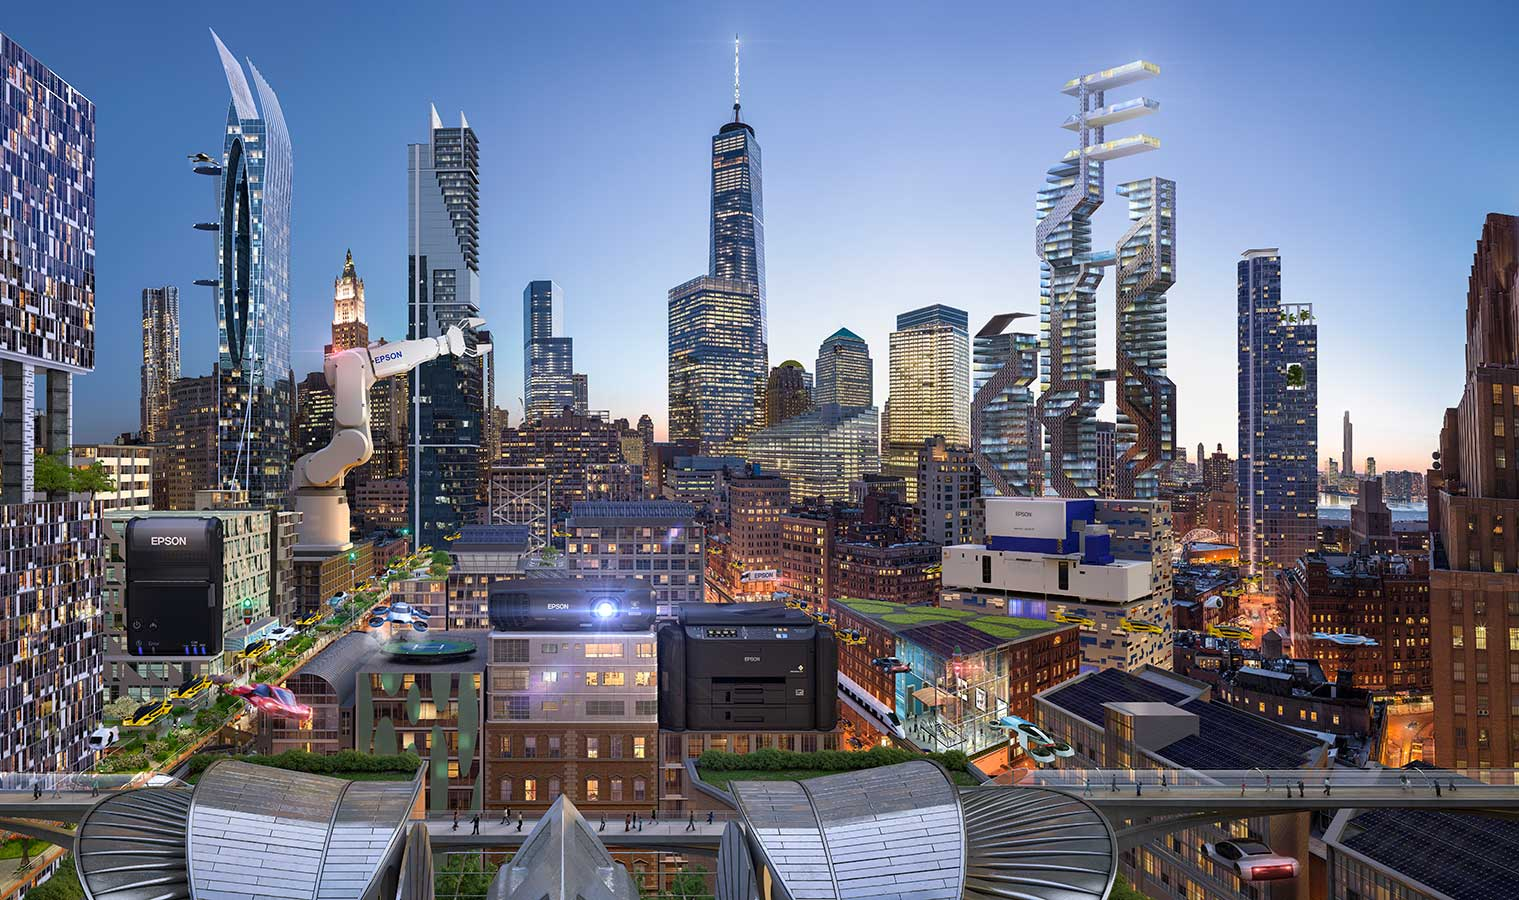 Working with Glen Wexler to produce future cities for Epson